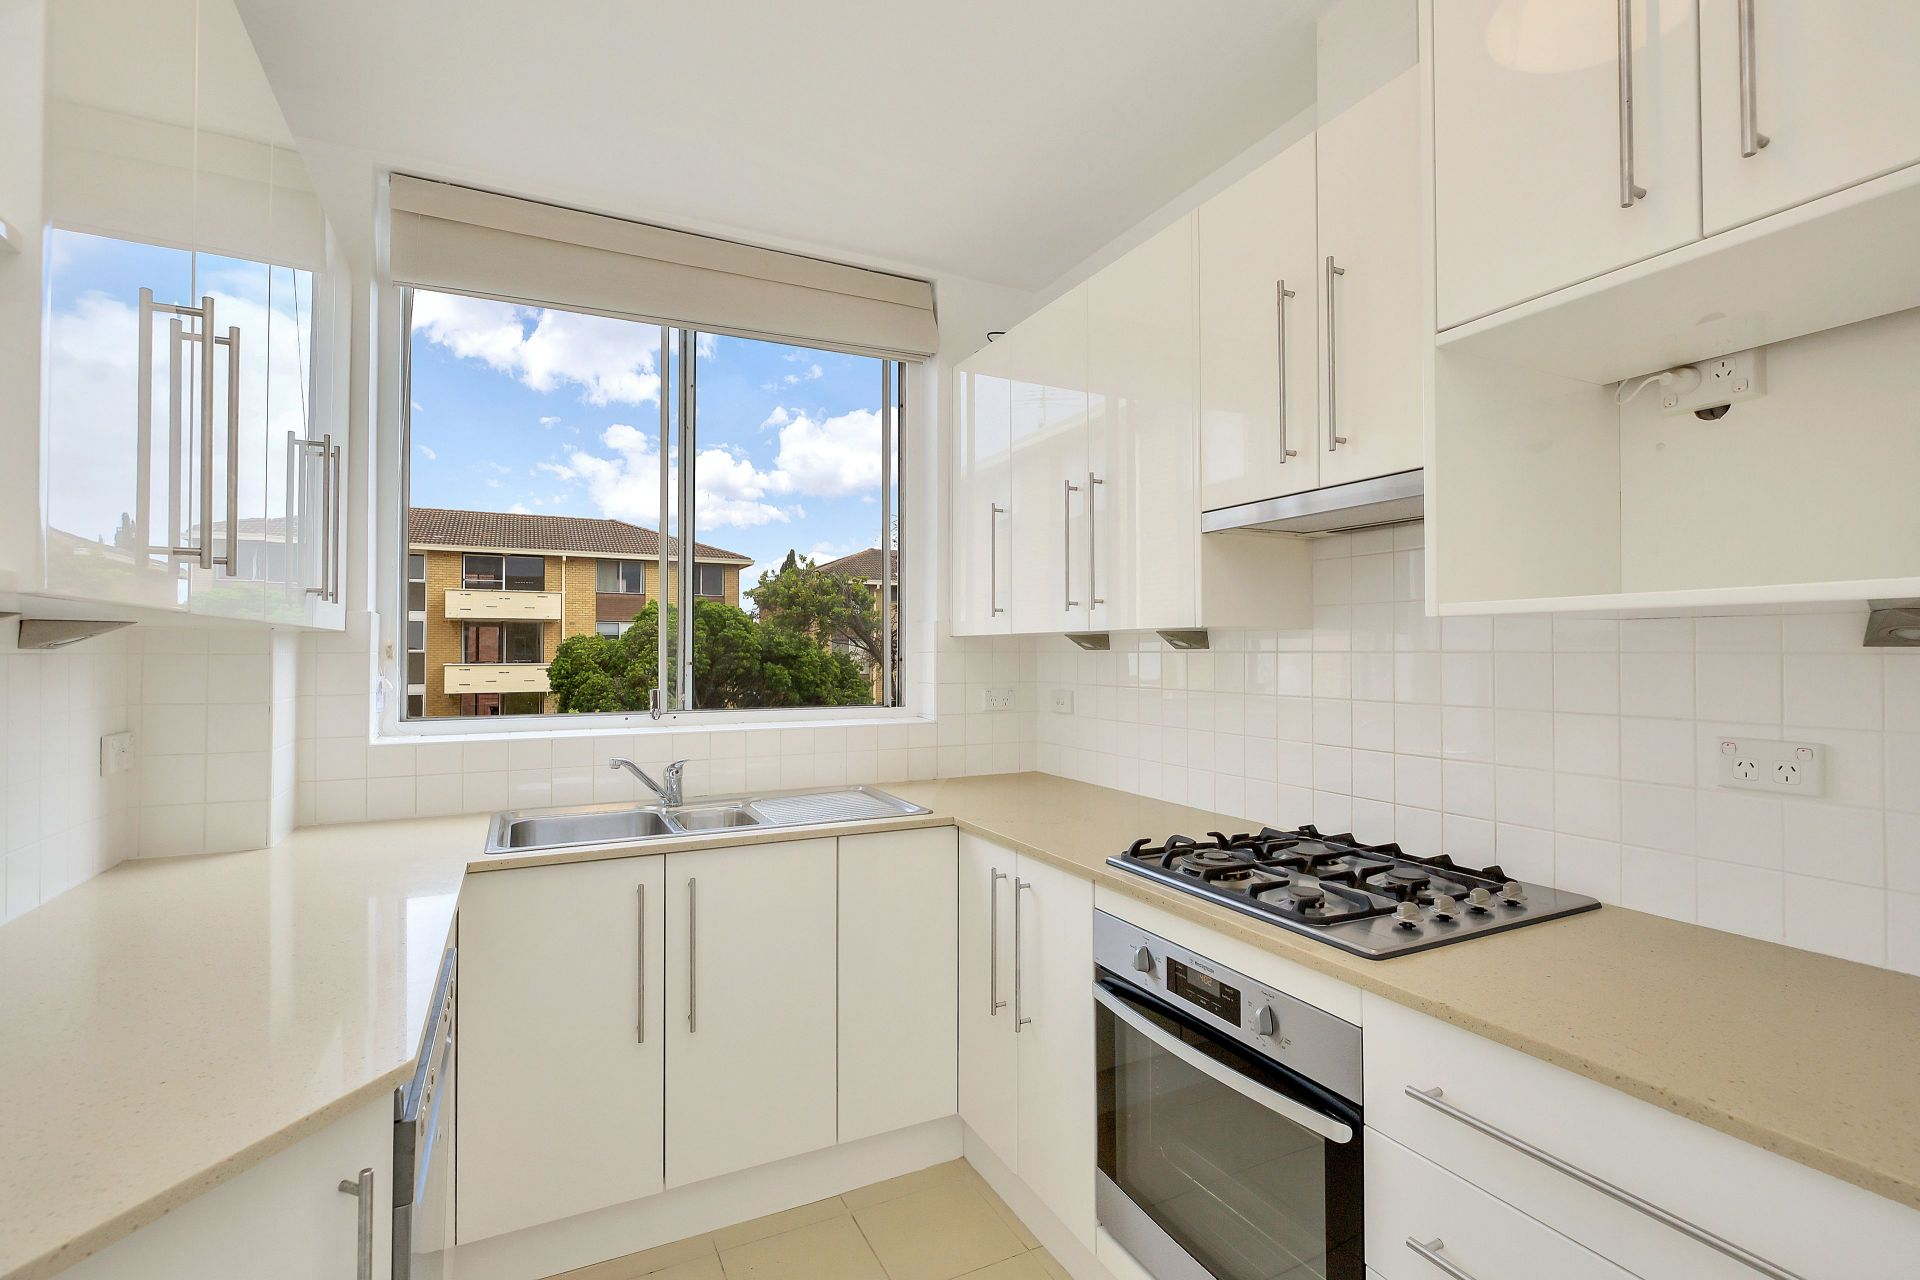 IMMACULATE & SPACIOUS 3 BEDROOM APARTMENT IN QUIET LOCATION